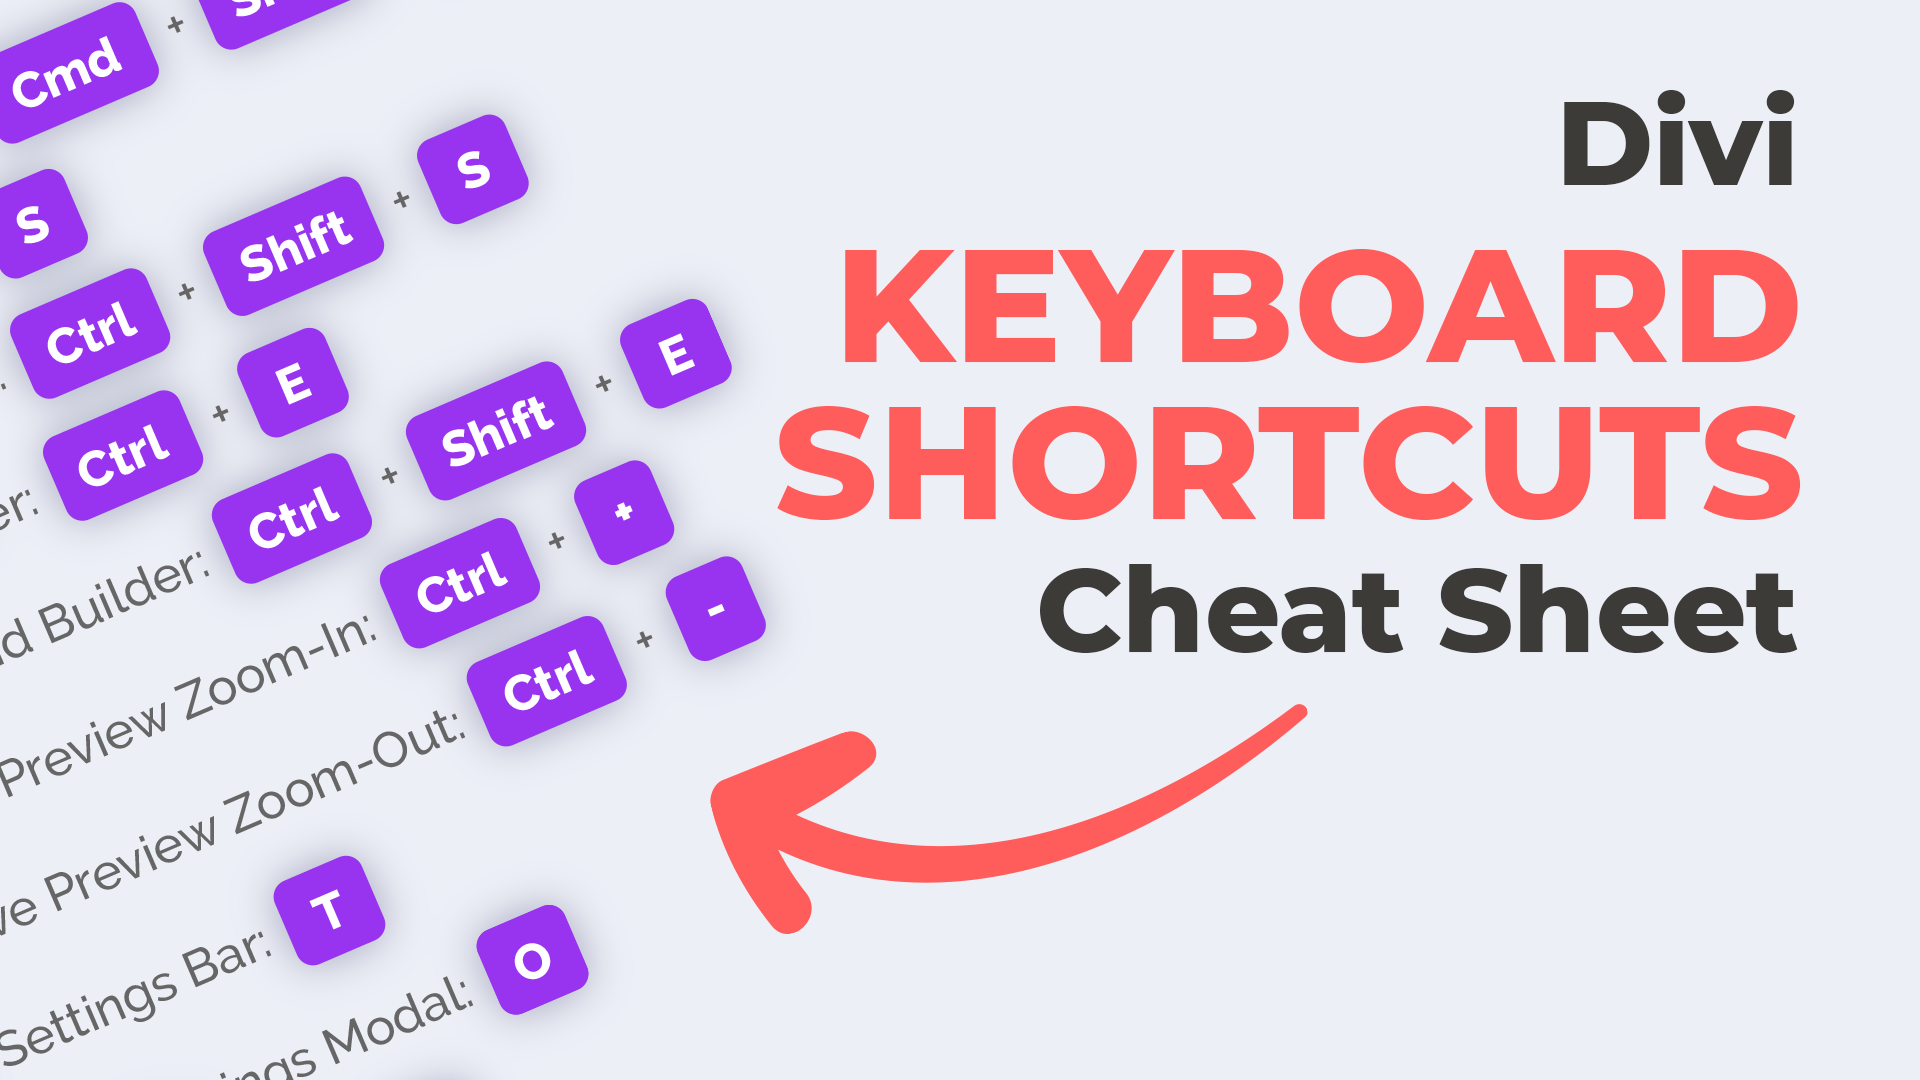 Divi Keyboard Shortcuts Cheat Sheet